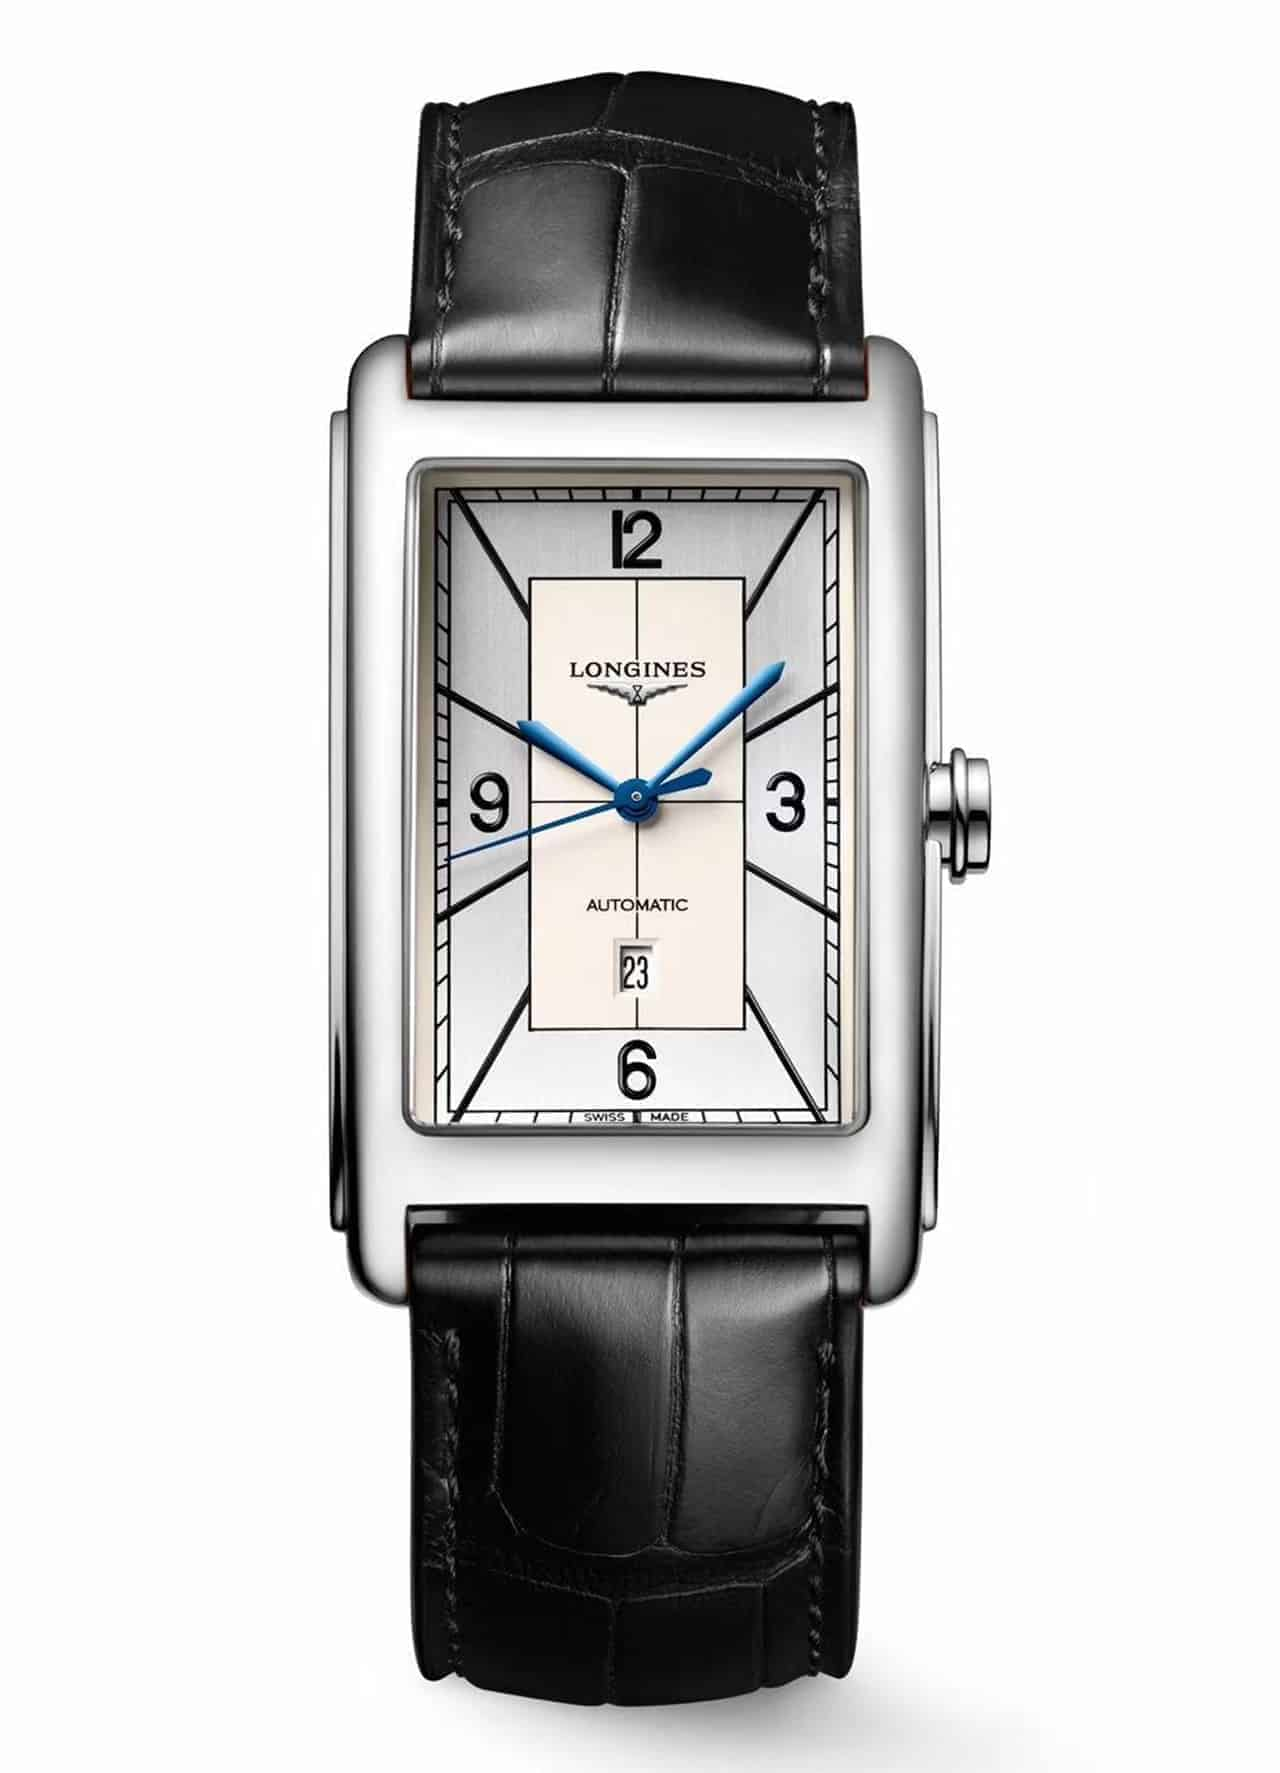 Longines Presents: New DolceVita Grande Trio with Sector Dial